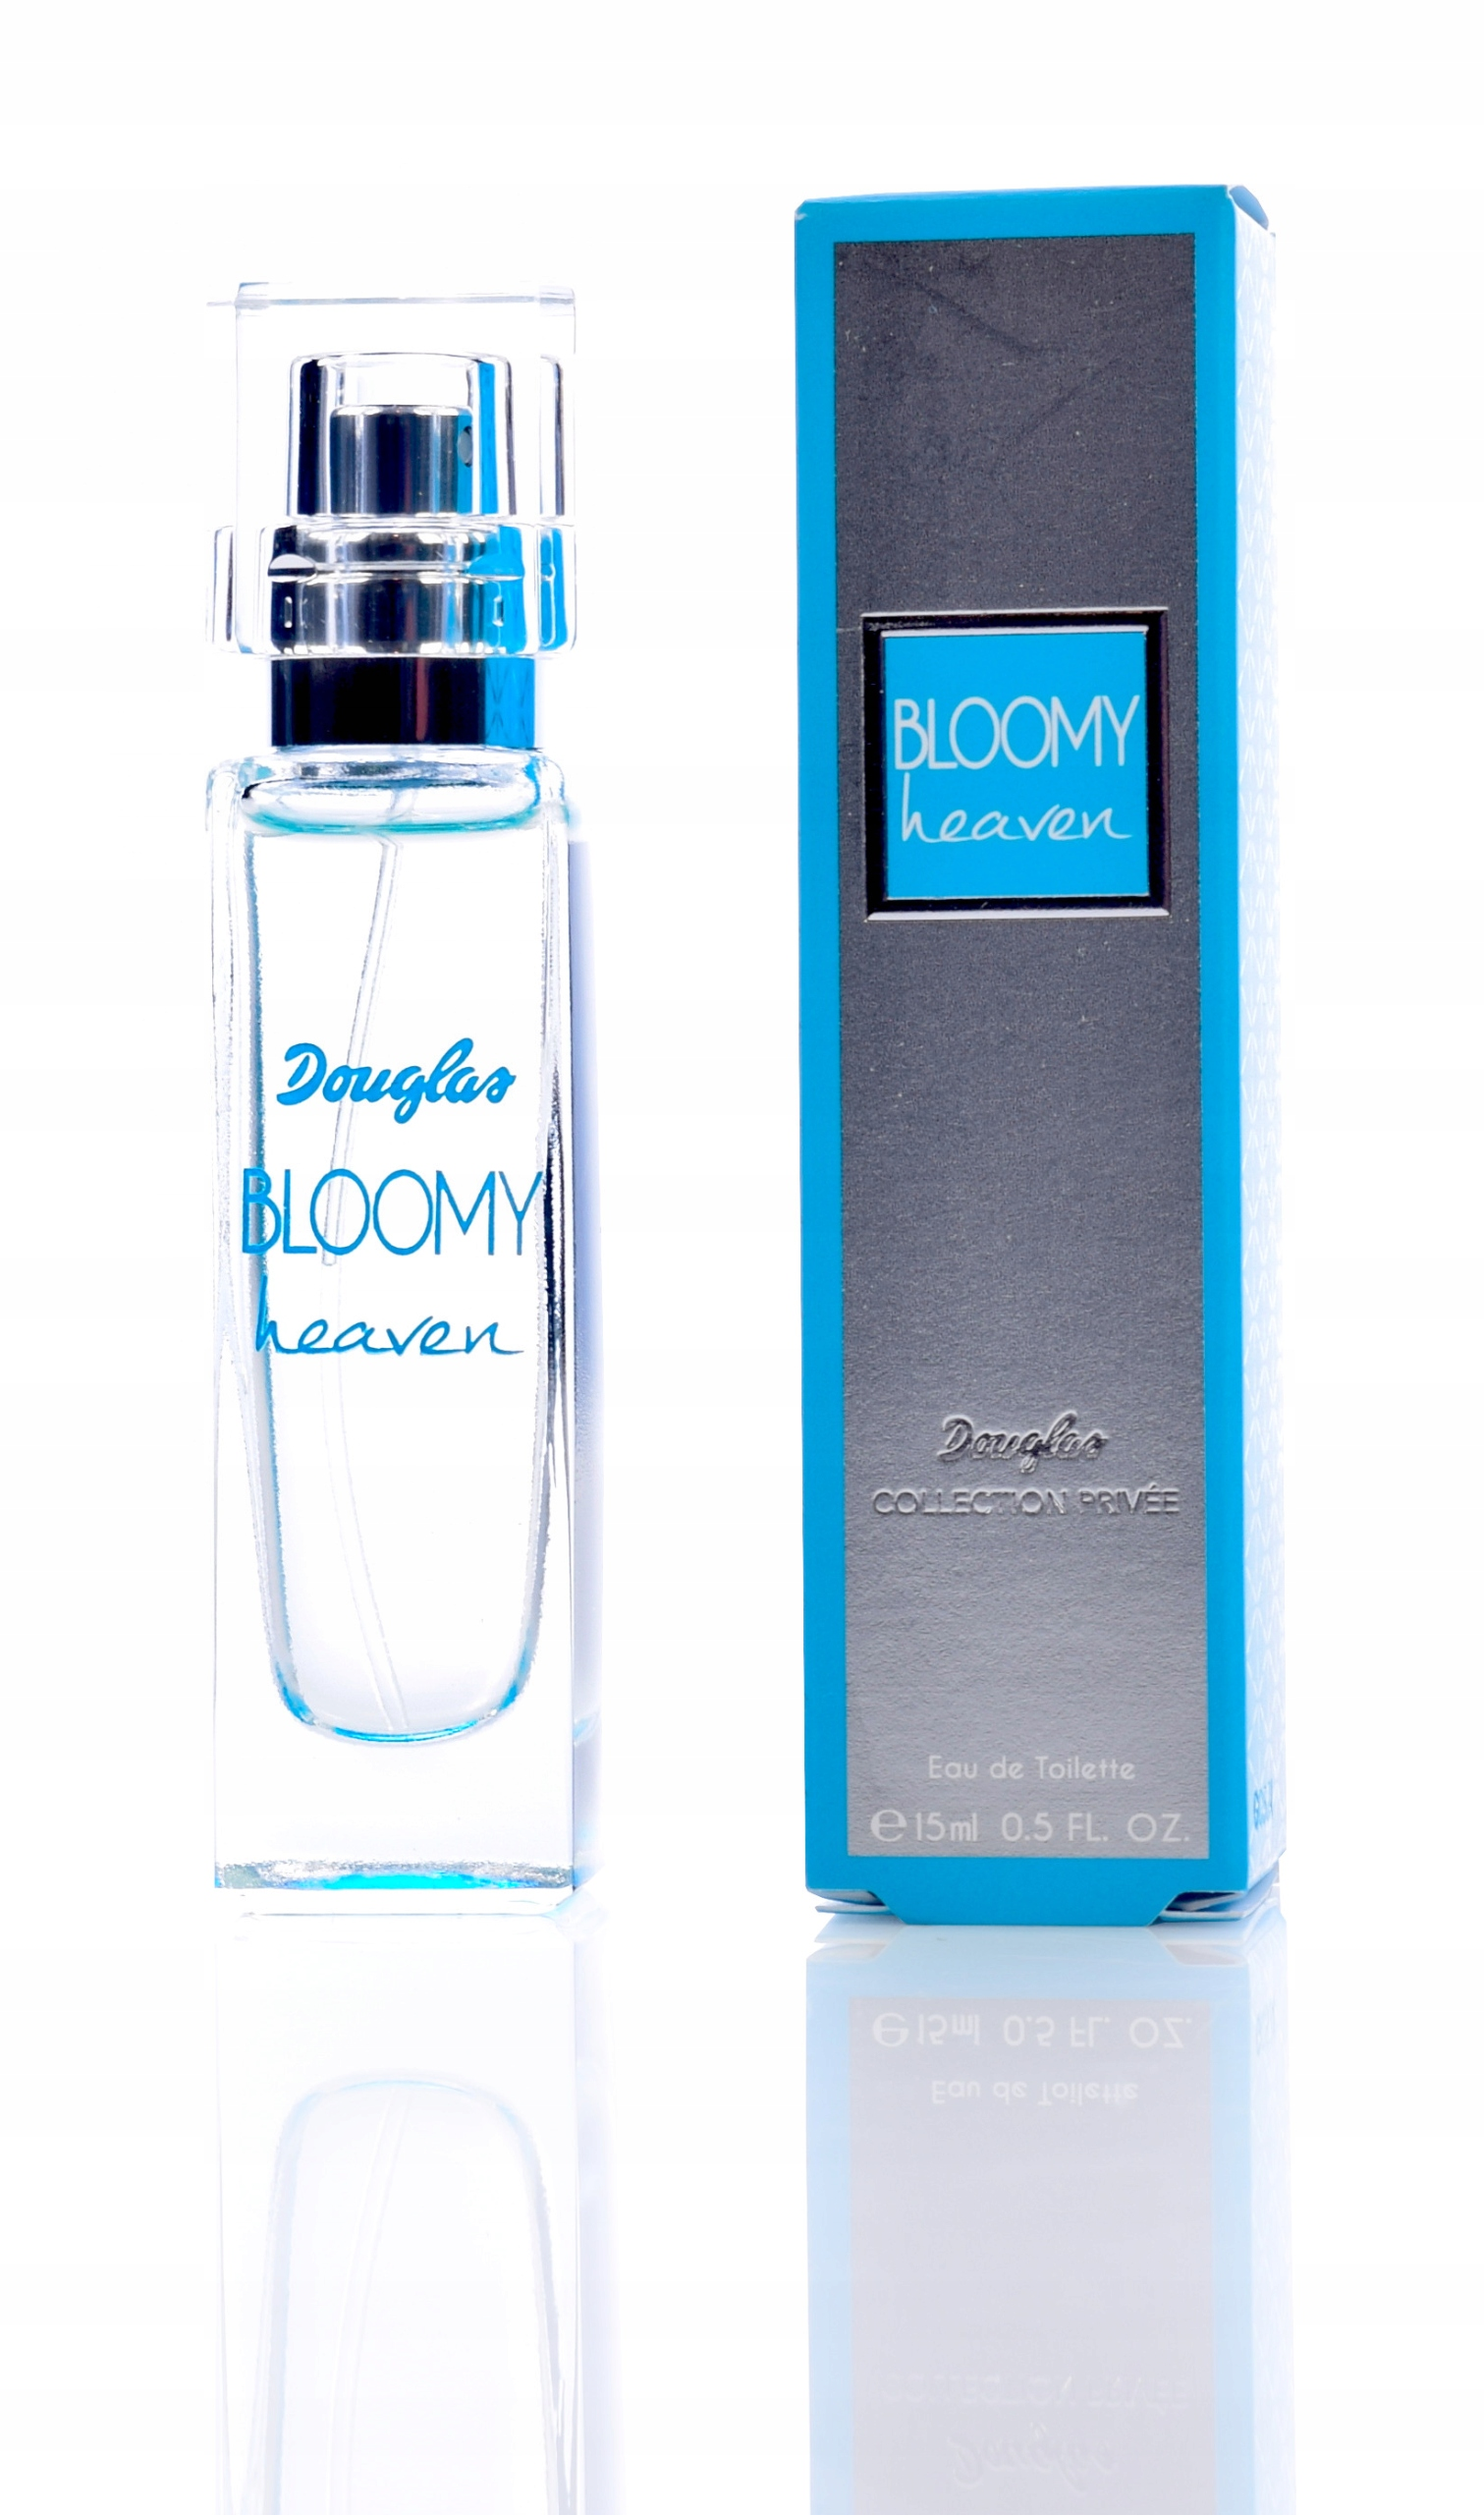 DOUGLAS BLOOMY HEAVEN Woda Toaletowa EDT 15ml